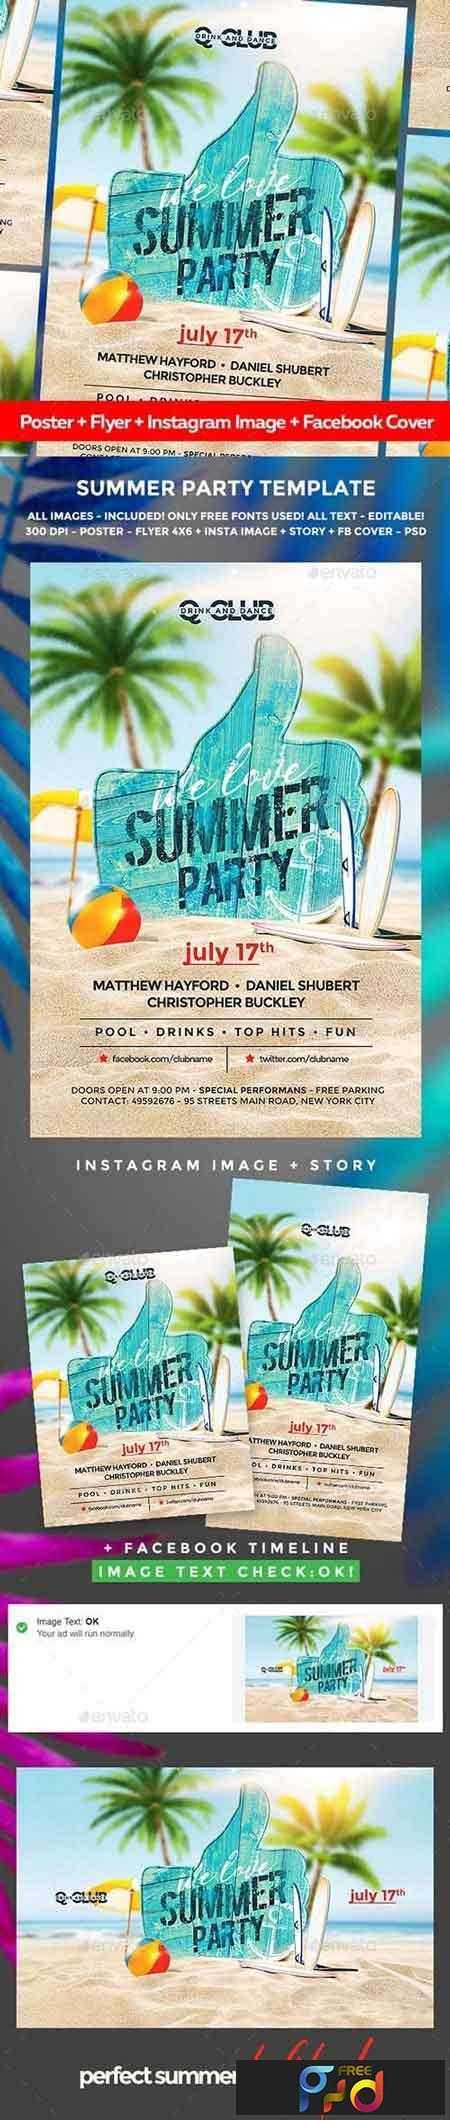 1808015 Summer Party 22024917 1